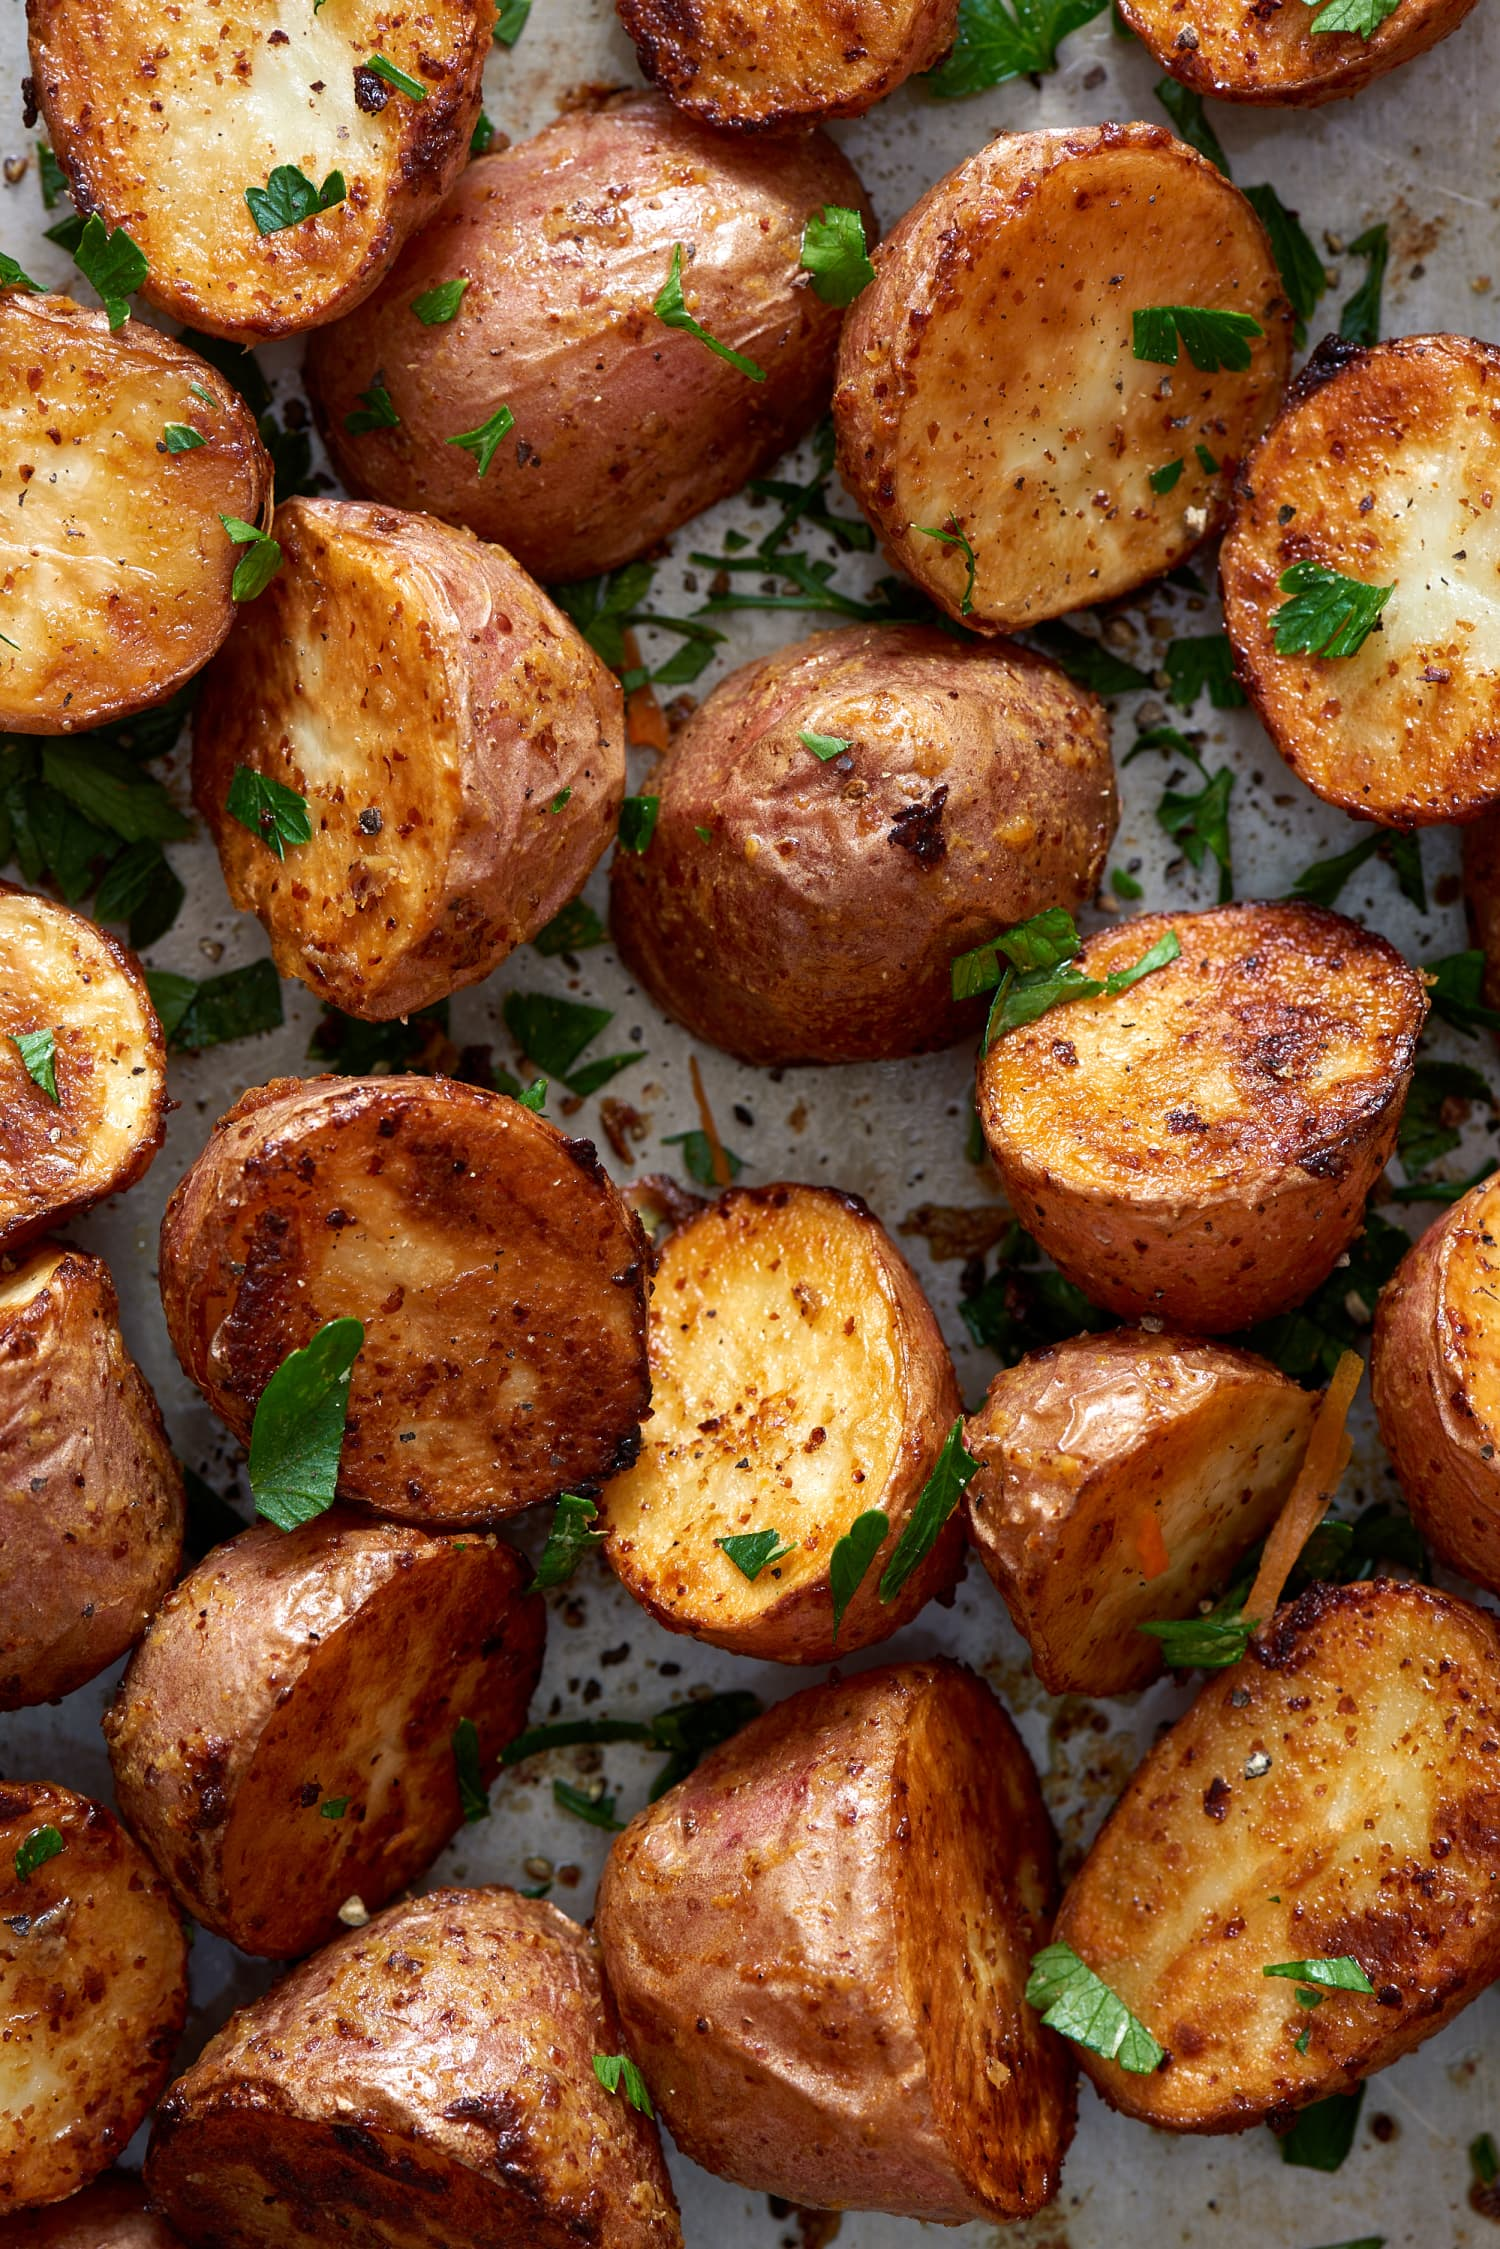 3-Ingredient Dijon Roasted Potatoes That Go with Everything